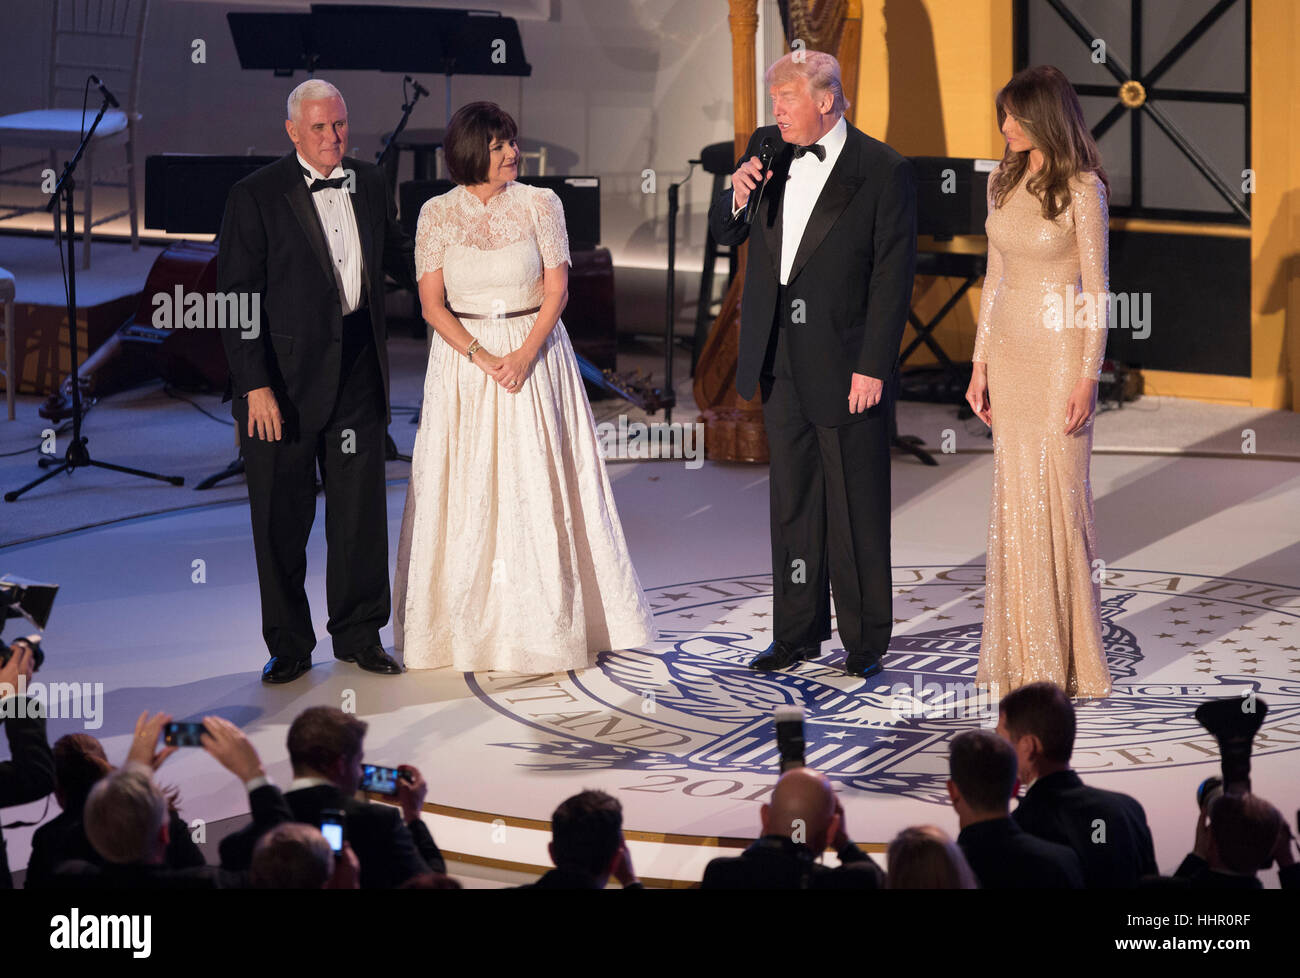 Washington, DC, USA. 19th Jan, 2017. Vice President -elect of The United States Mike Pence, his wife Karen Pence Stock Foto